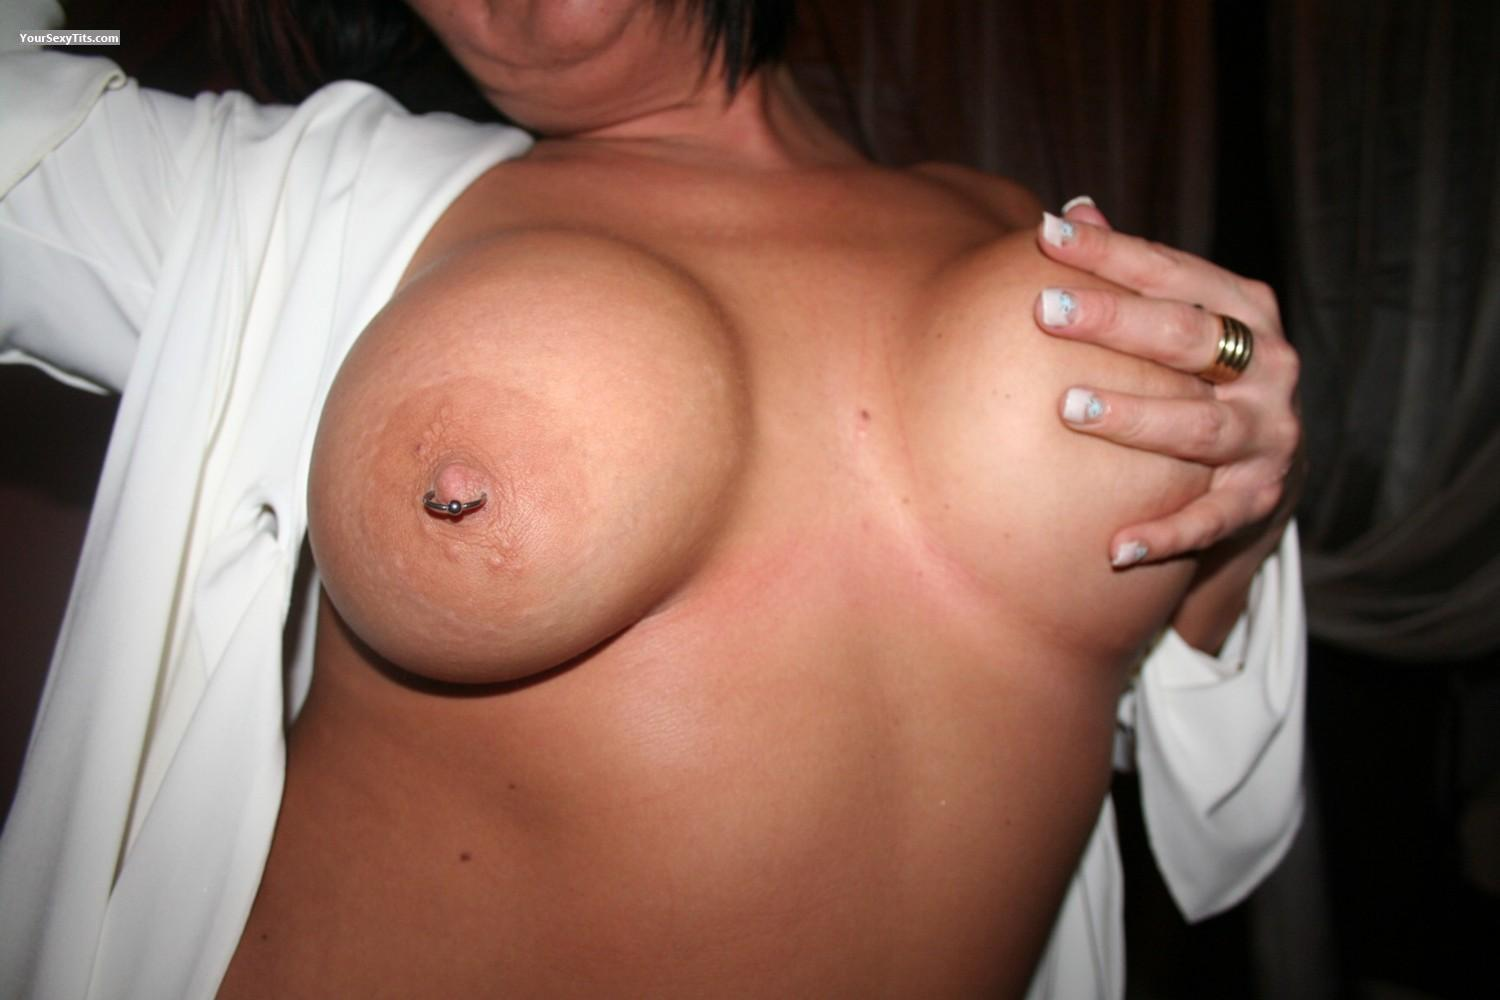 Tit Flash: Very Big Tits - Savannah from United StatesPierced Nipples